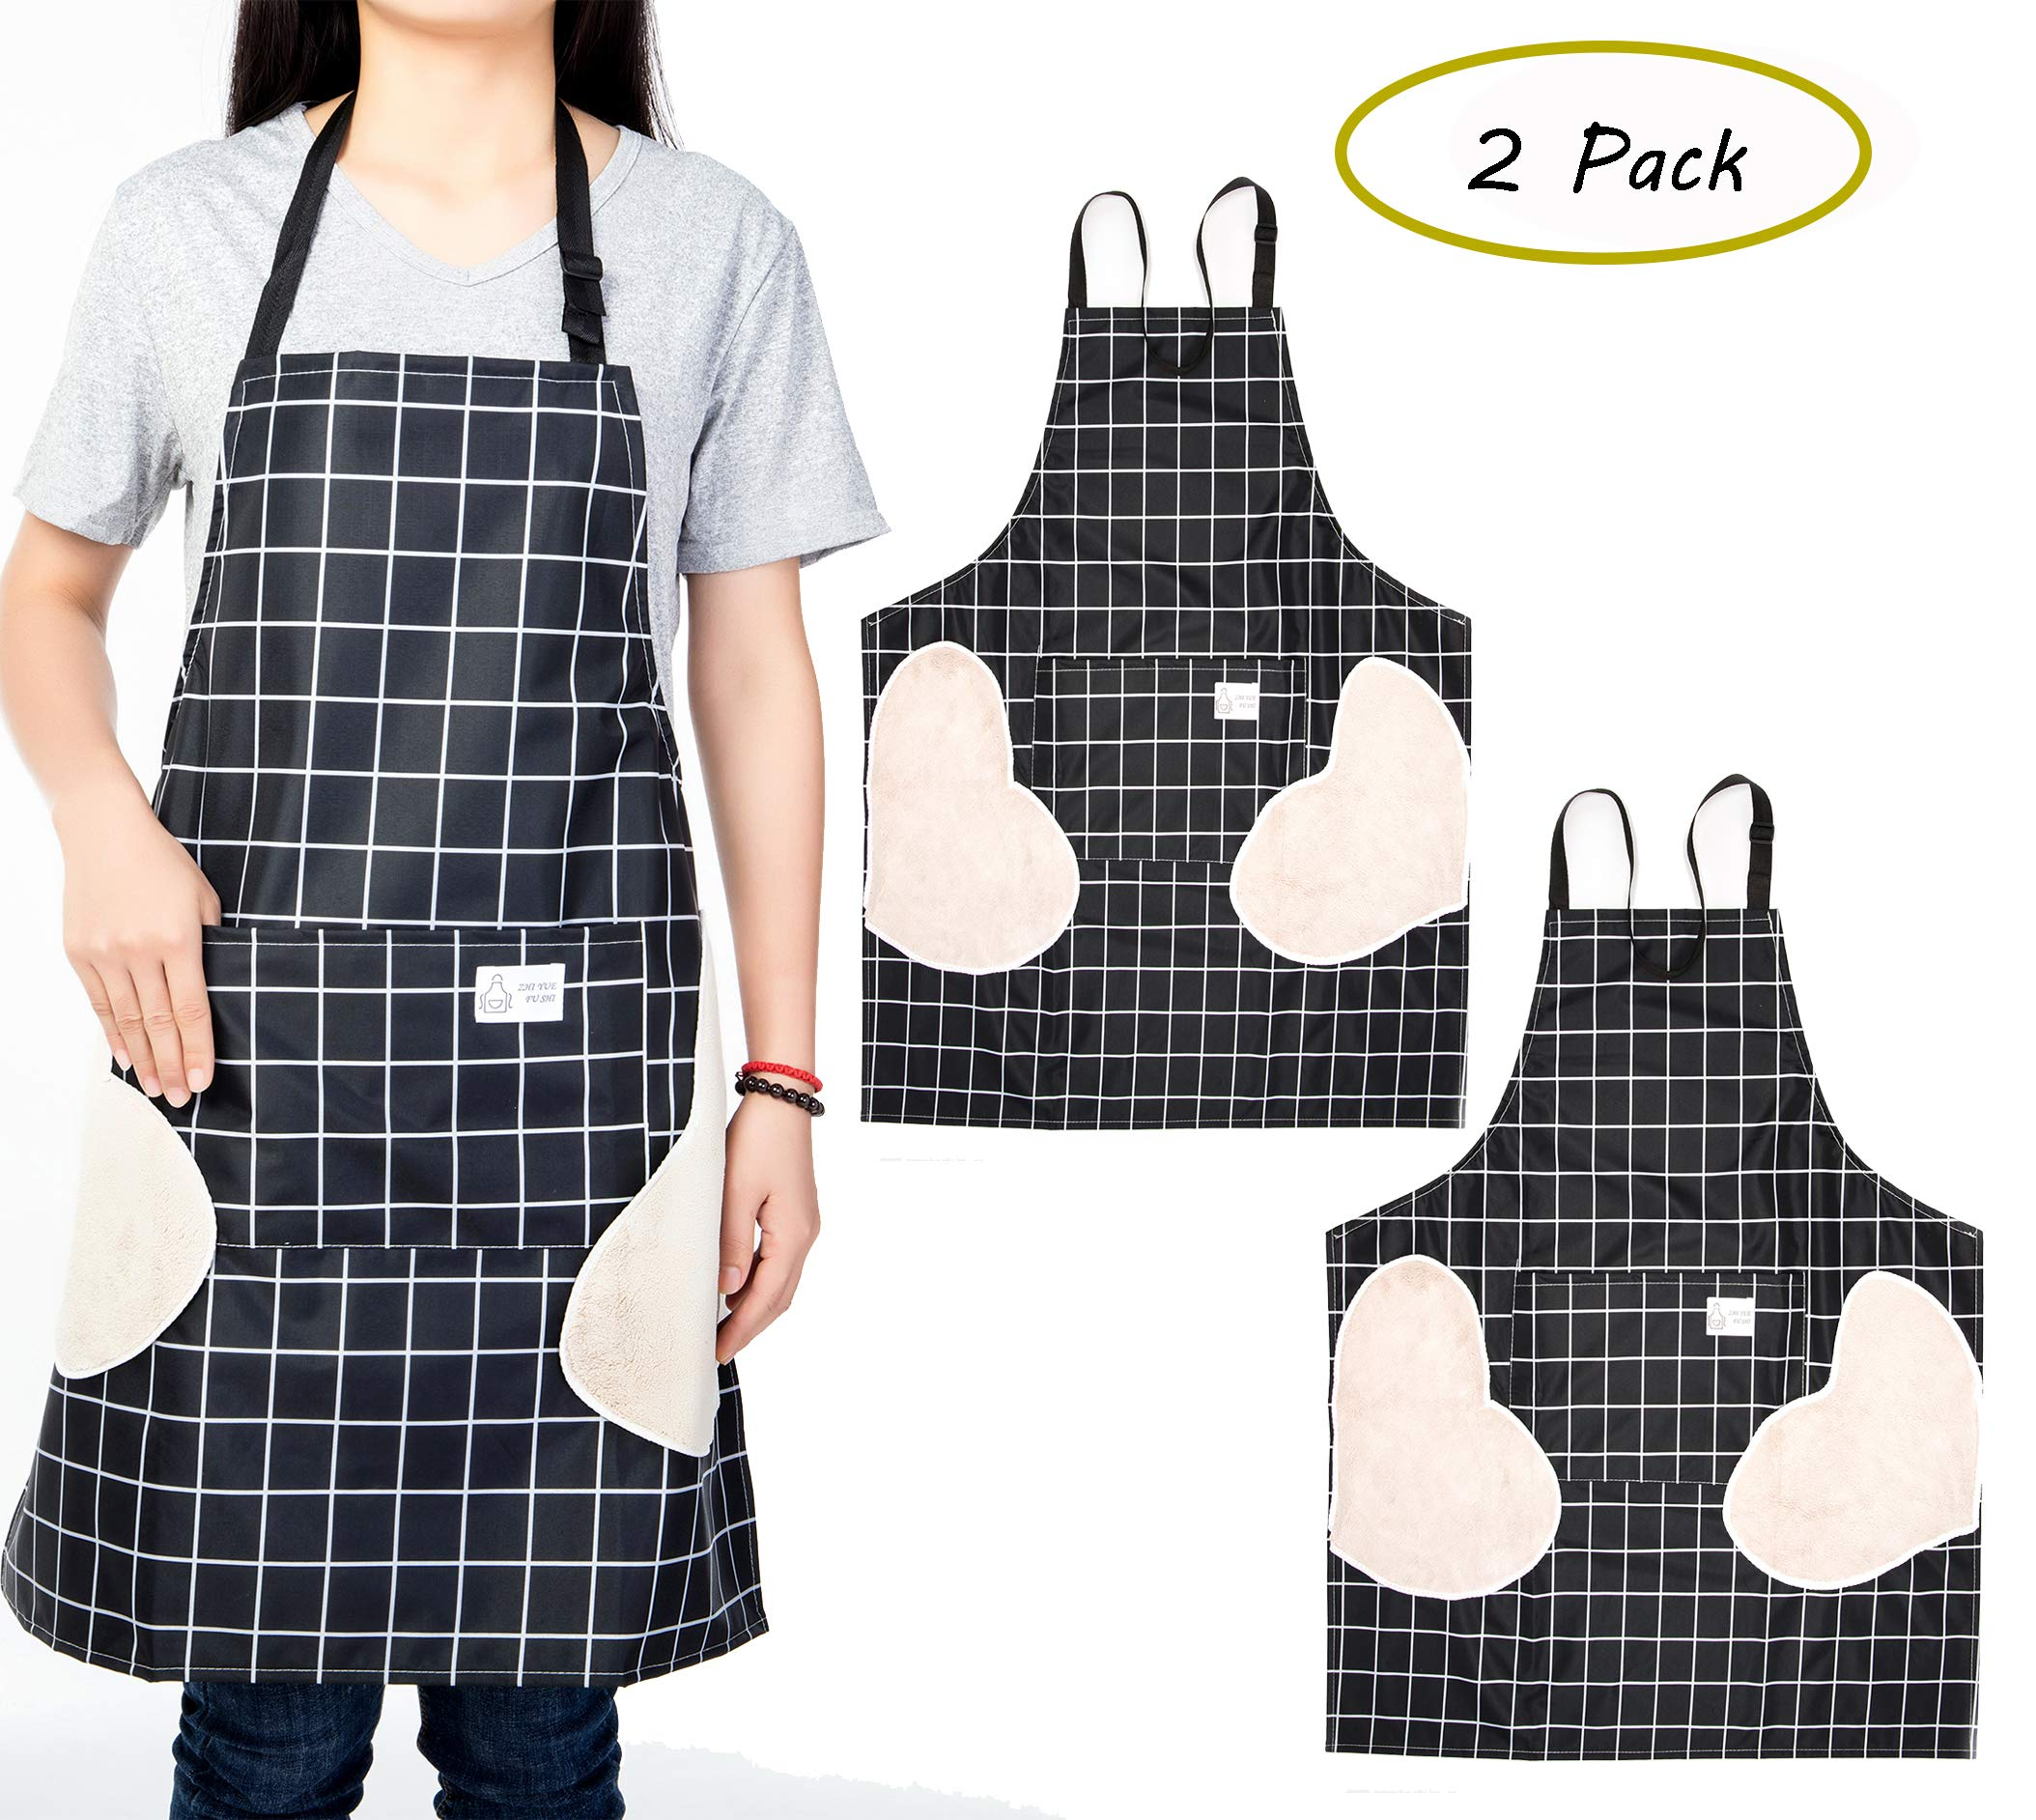 Hioffer 2 Pack Erasable Hand Waterproof Kitchen Apron Women's Stripe Apron with Pocket Adjustable Strap for Cooking, Baking, BBQ and Gardening (Black x 2)